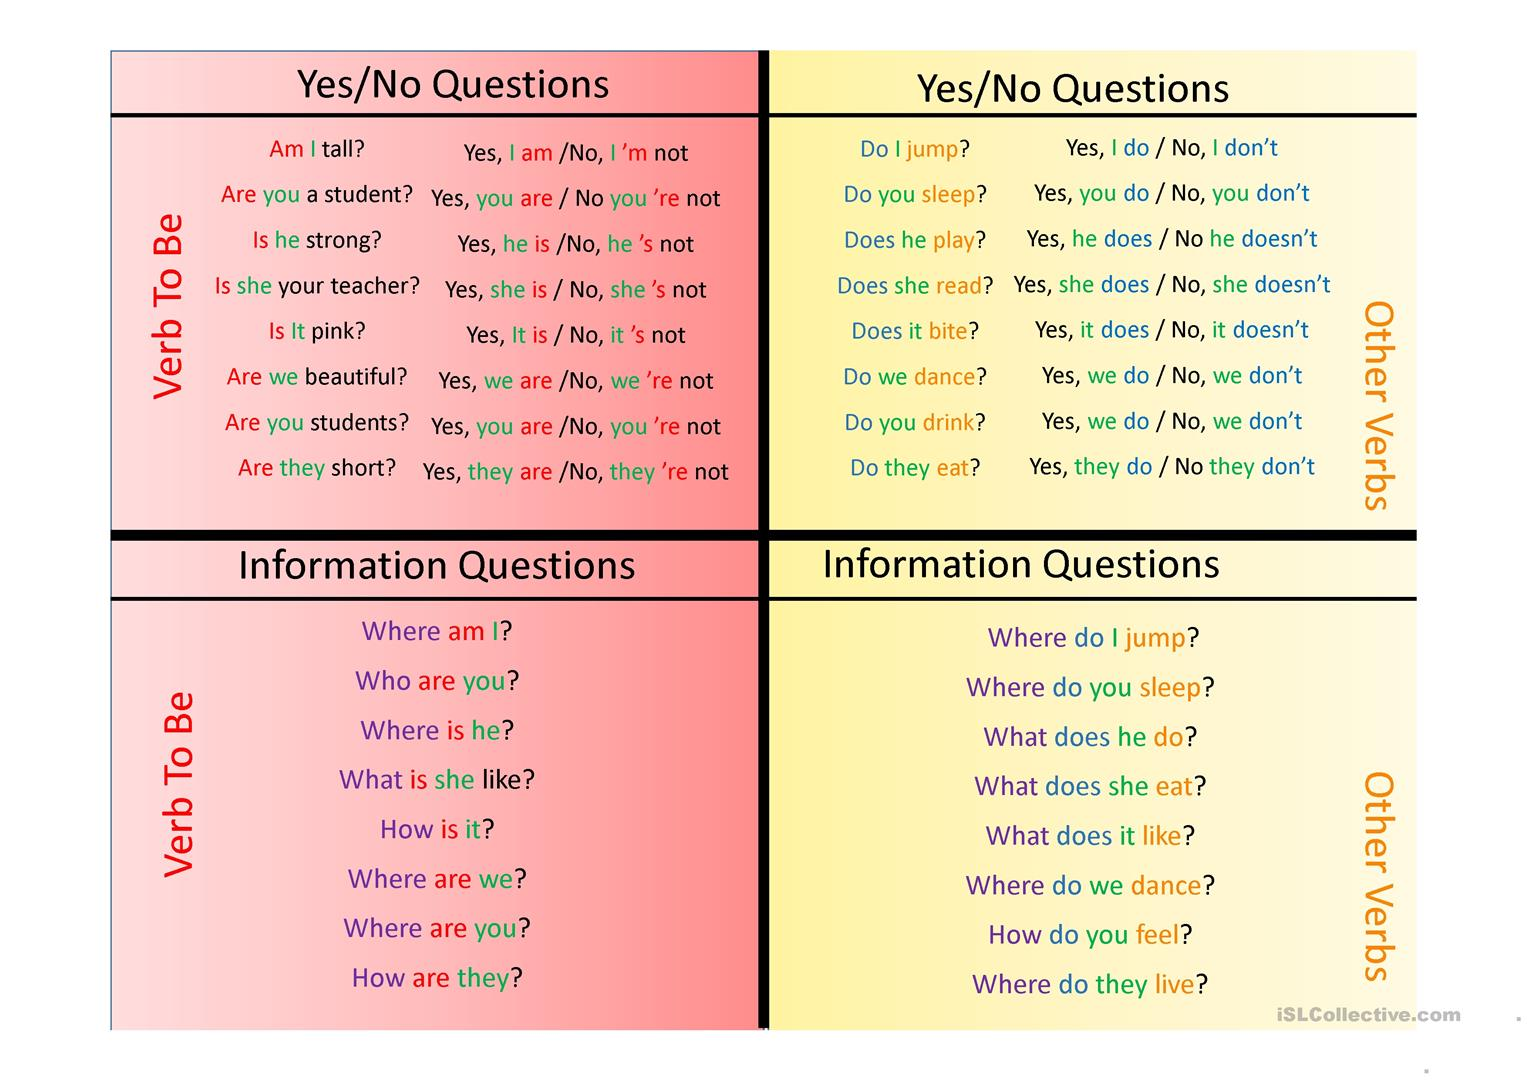 Yes And No Q S Vs Info Wh Questions Worksheet